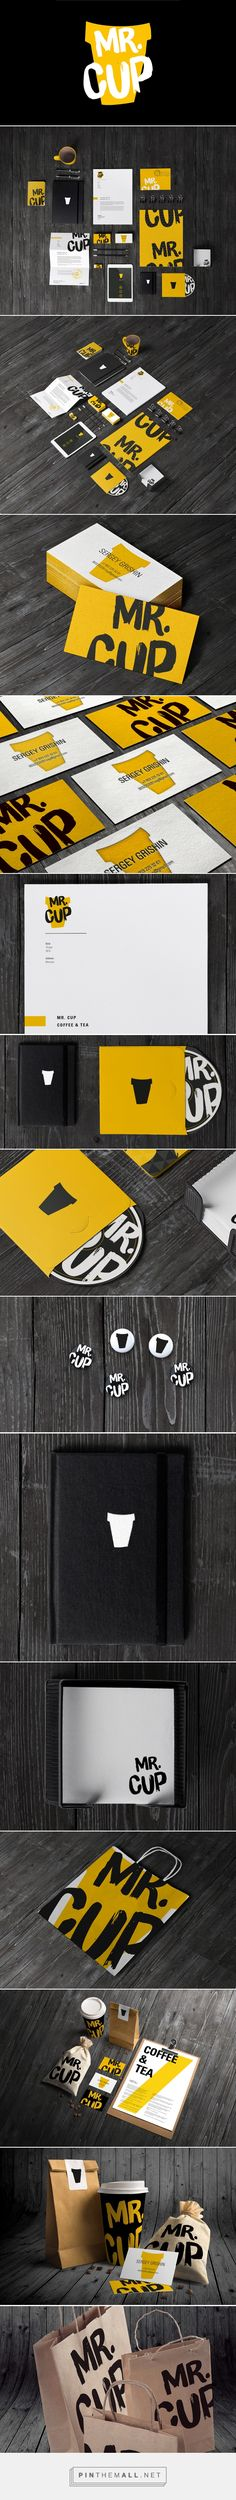 Mr.Cup Branding by Maria on Behance | Fivestar Branding – Design and Branding Agency & Inspiration Gallery